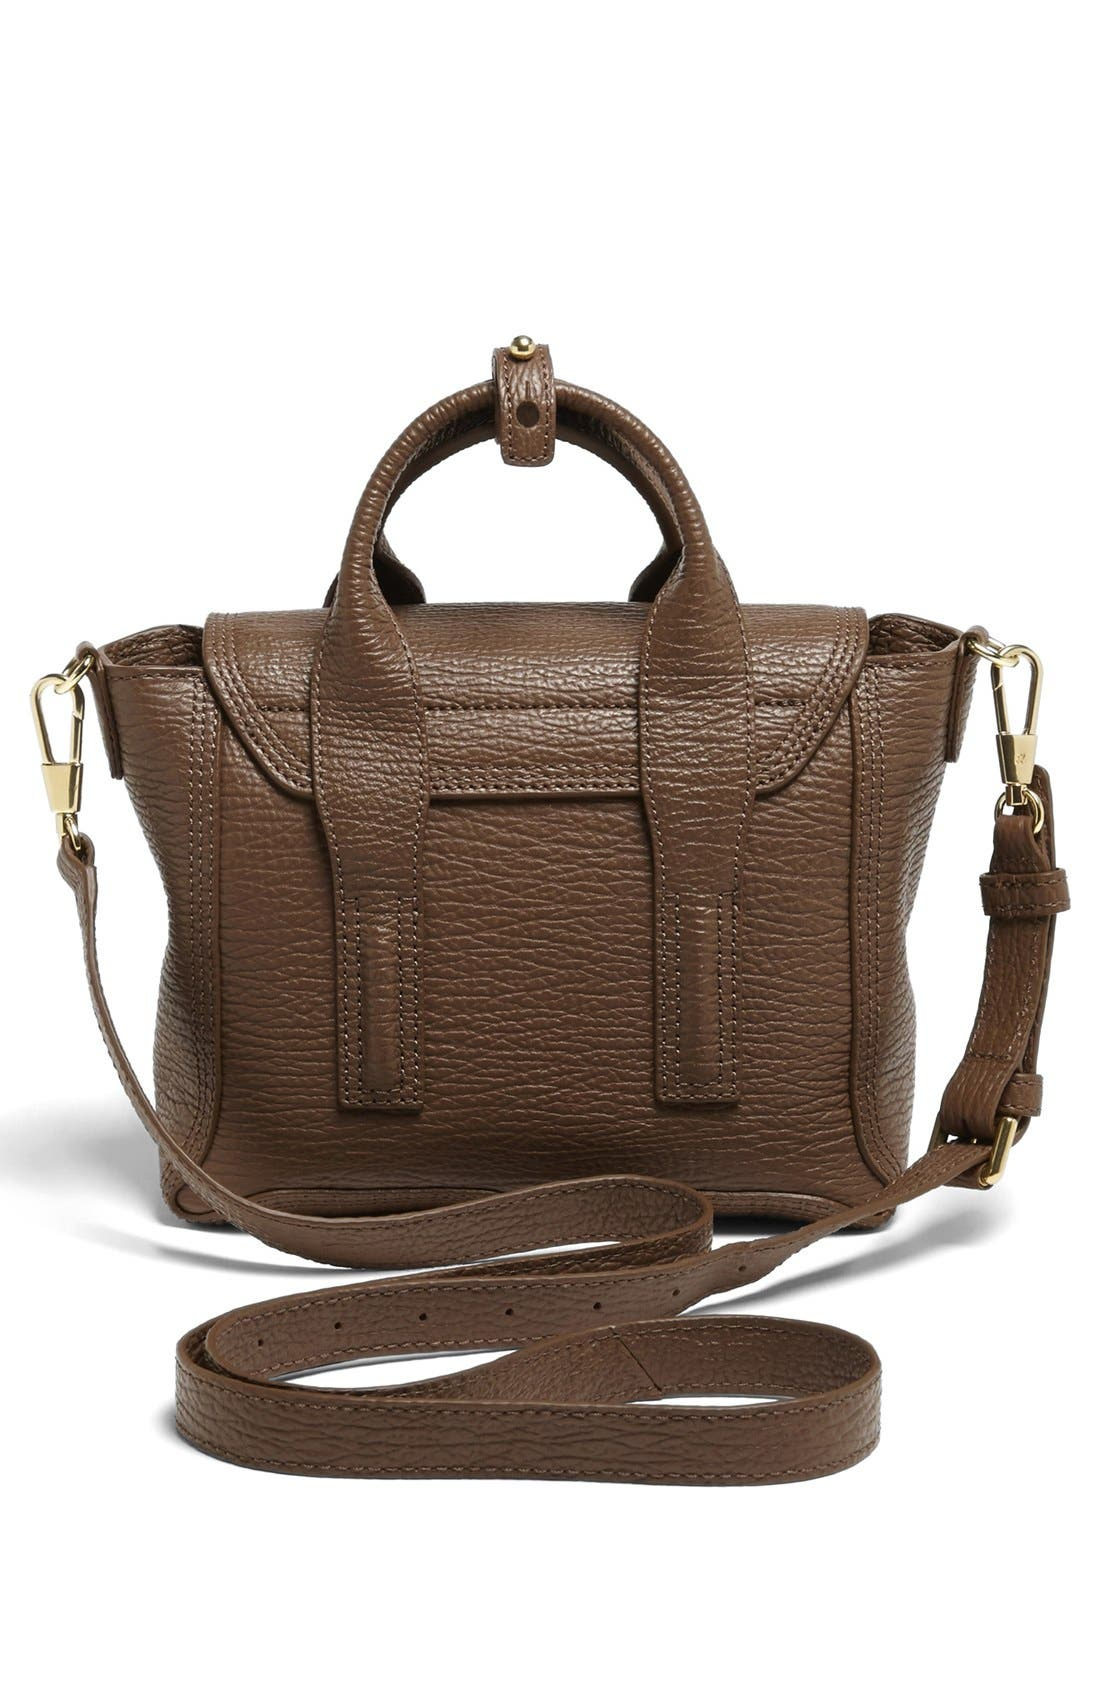 'Mini Pashli' Leather Satchel,                             Alternate thumbnail 3, color,                             Taupe